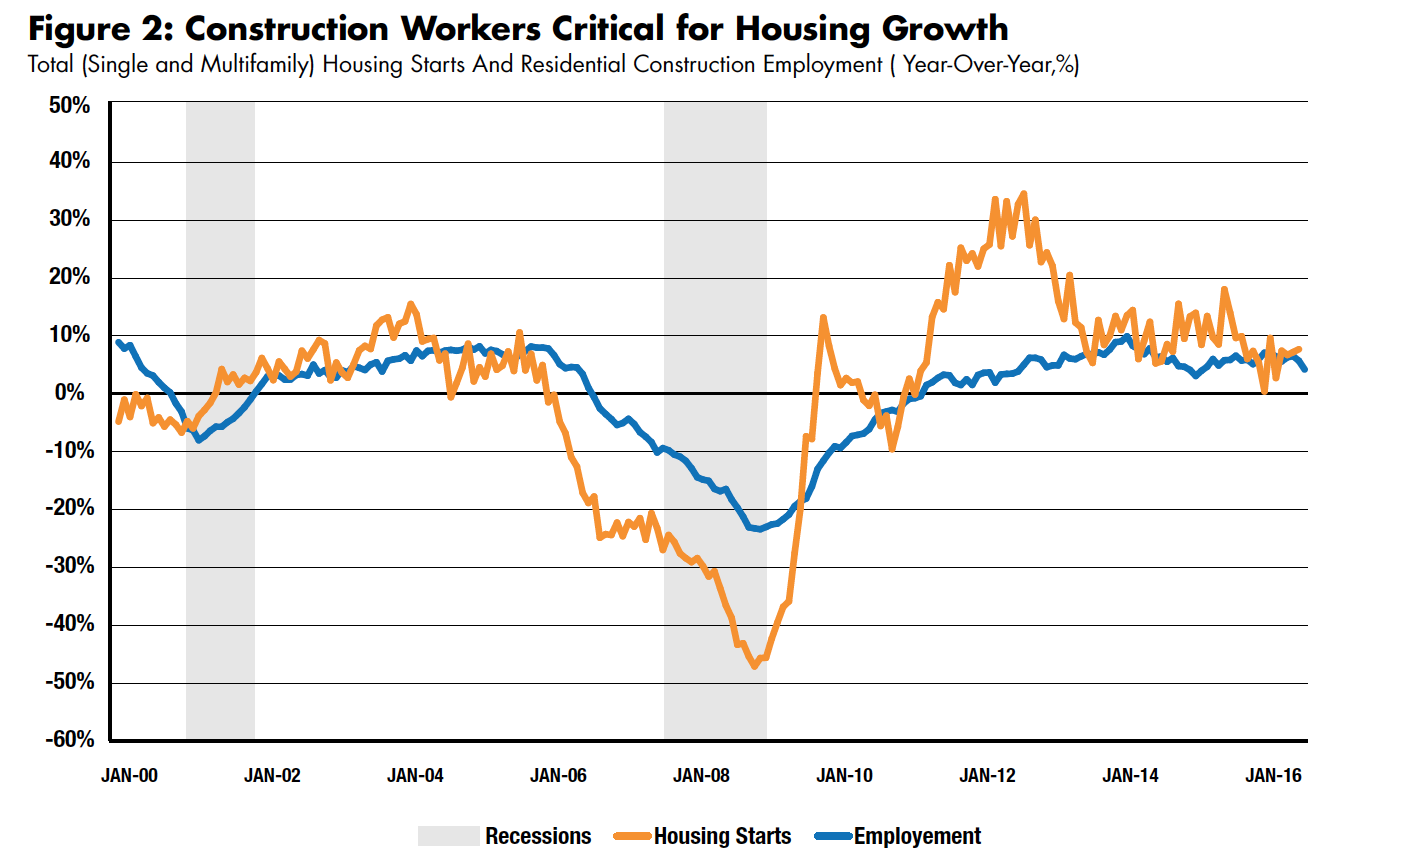 Construction Workers Critical for Housing Growth